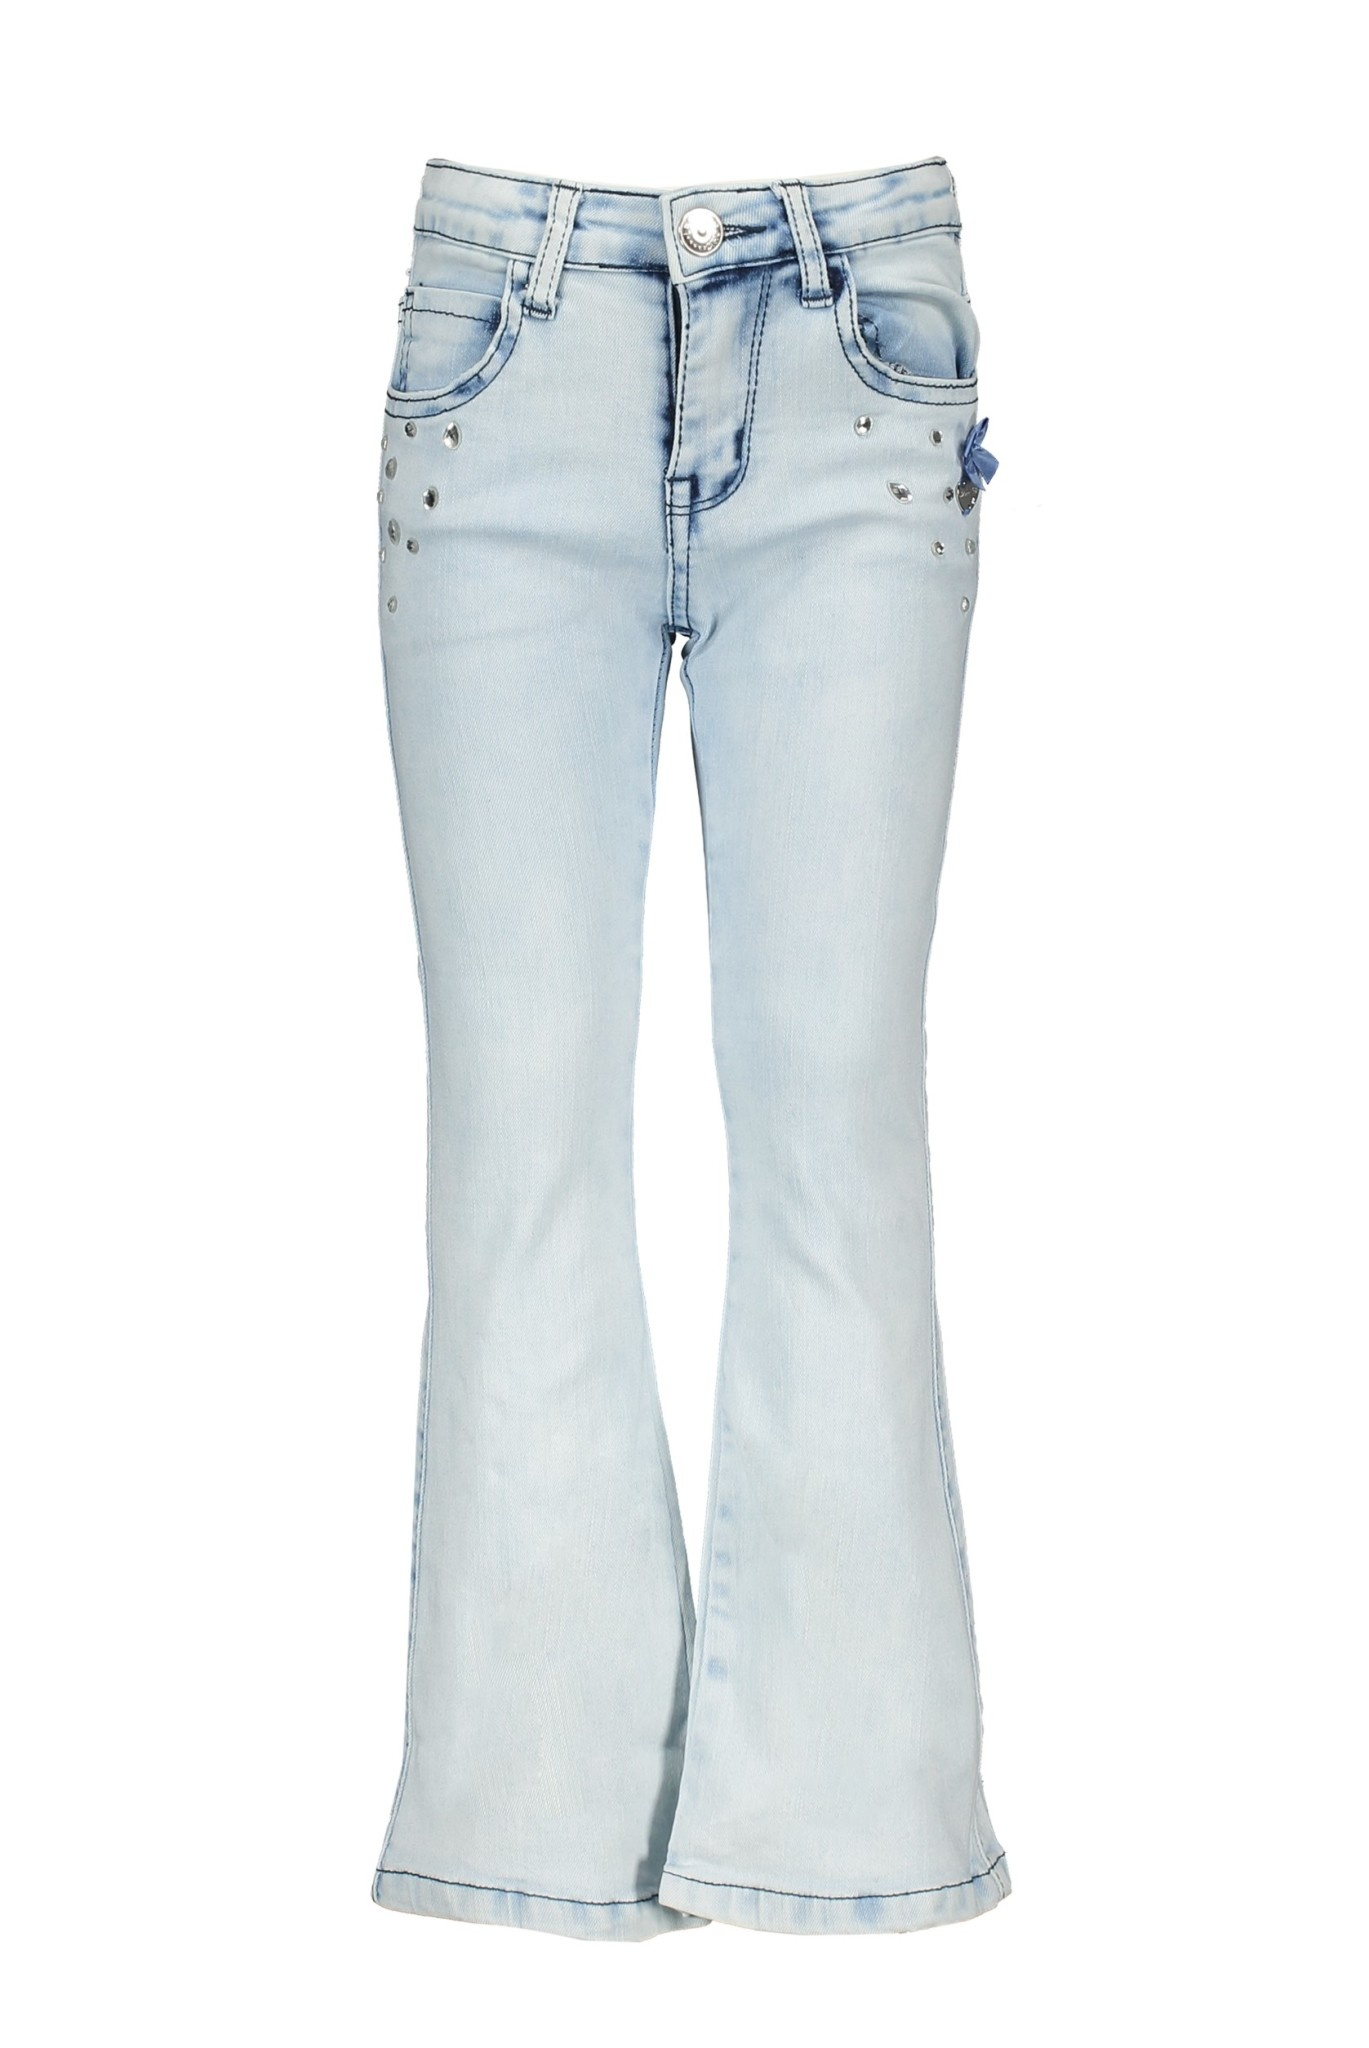 Le Chic Le Chic spijkerbroek bleached flared jeans